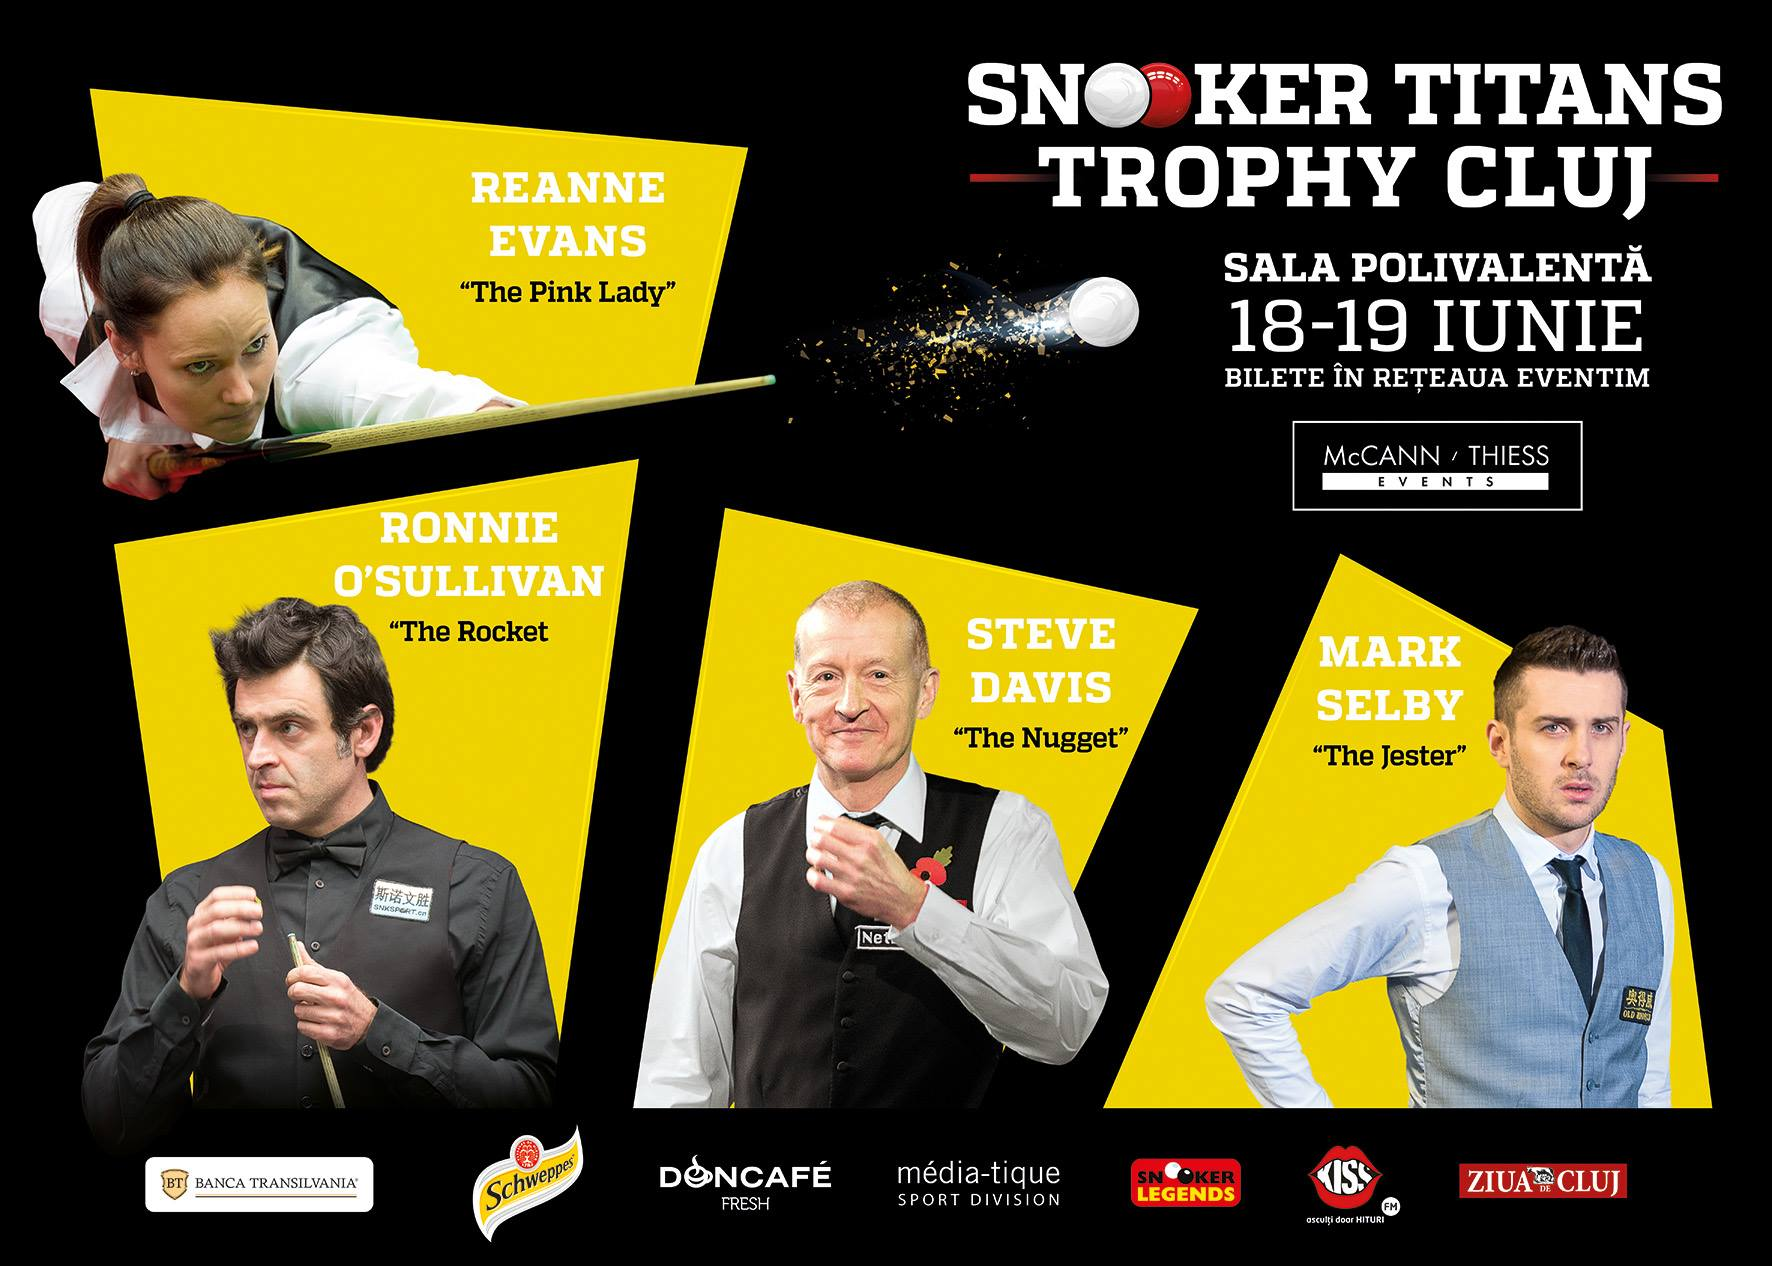 snooker titans trophy 2016 cluj